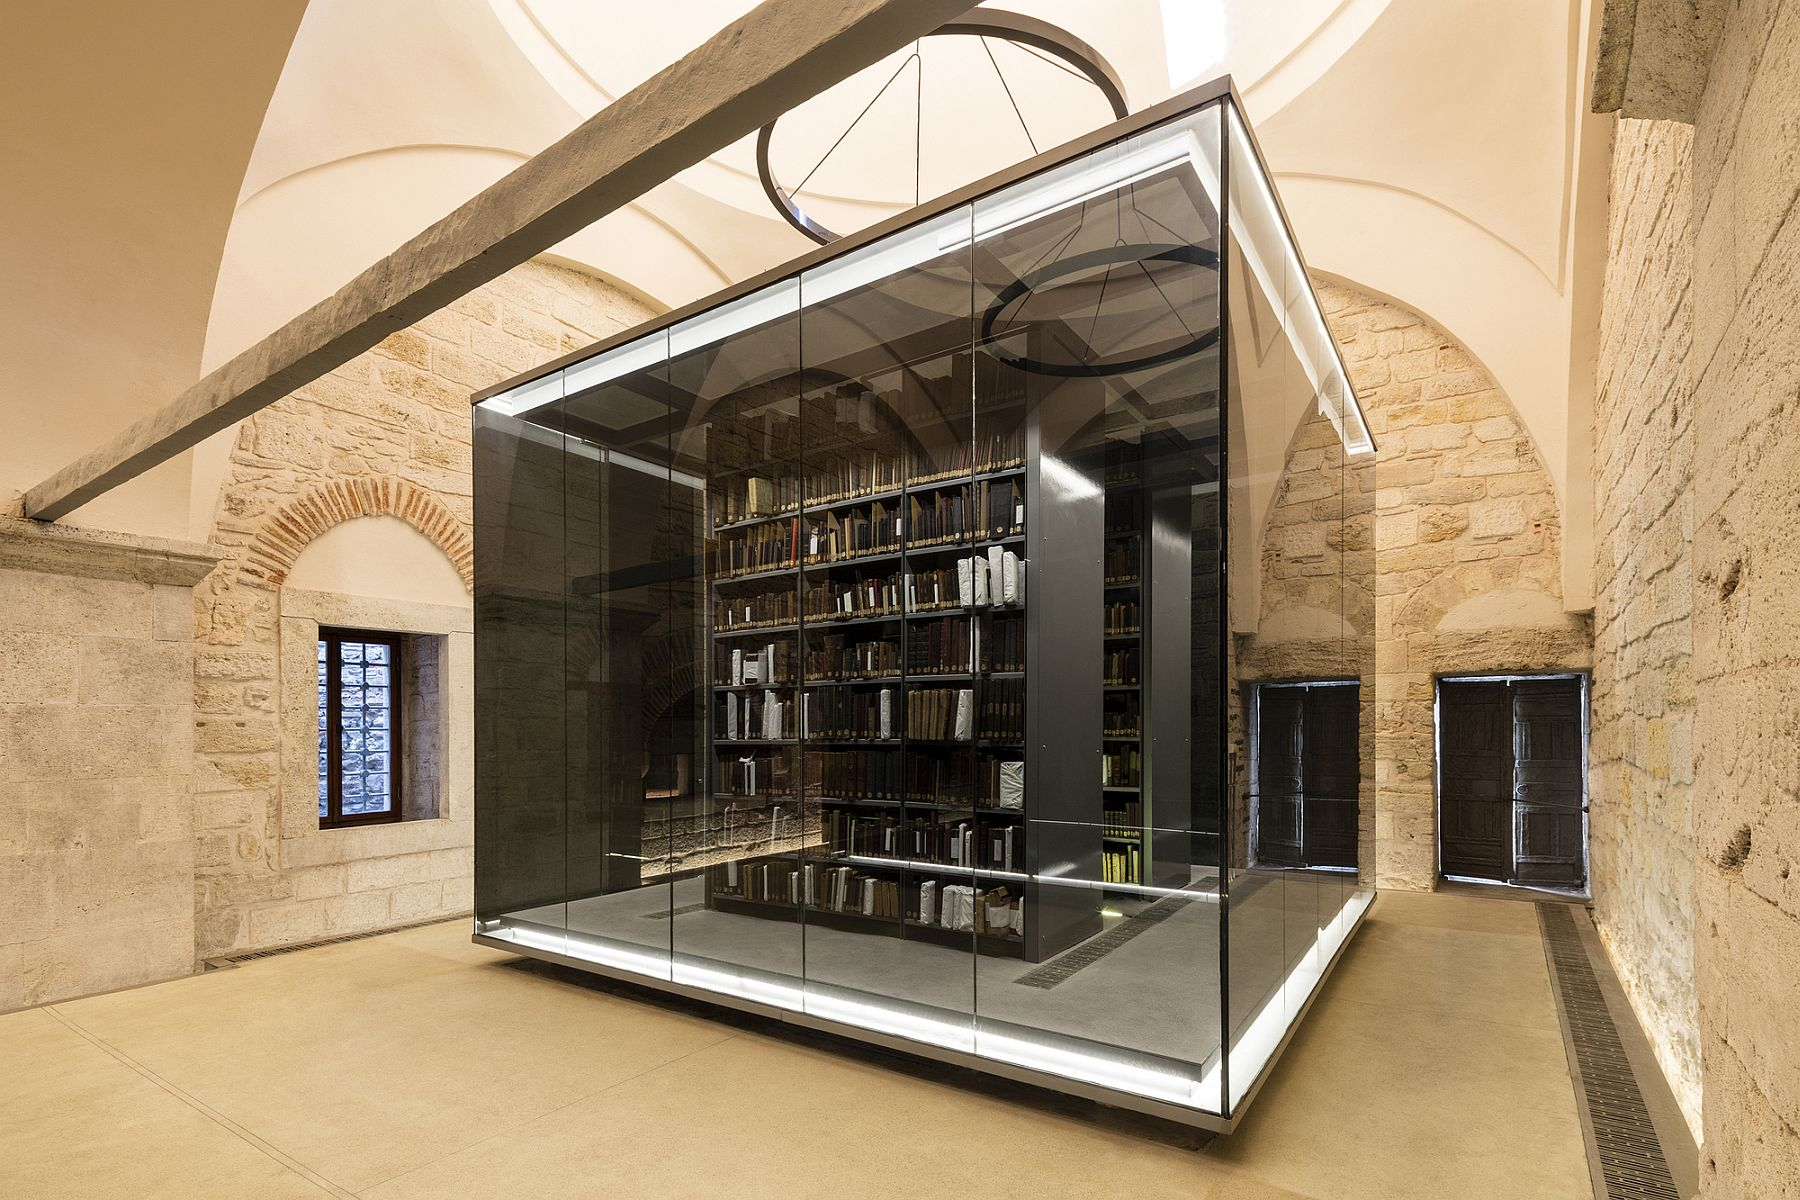 Illuminated glass boxes designed by Tabanlioglu Architects transform Istanbuls largest and oldest library Sensible and Minimal Restoration: Black Glass Boxes Alter Istanbul's Oldest Library